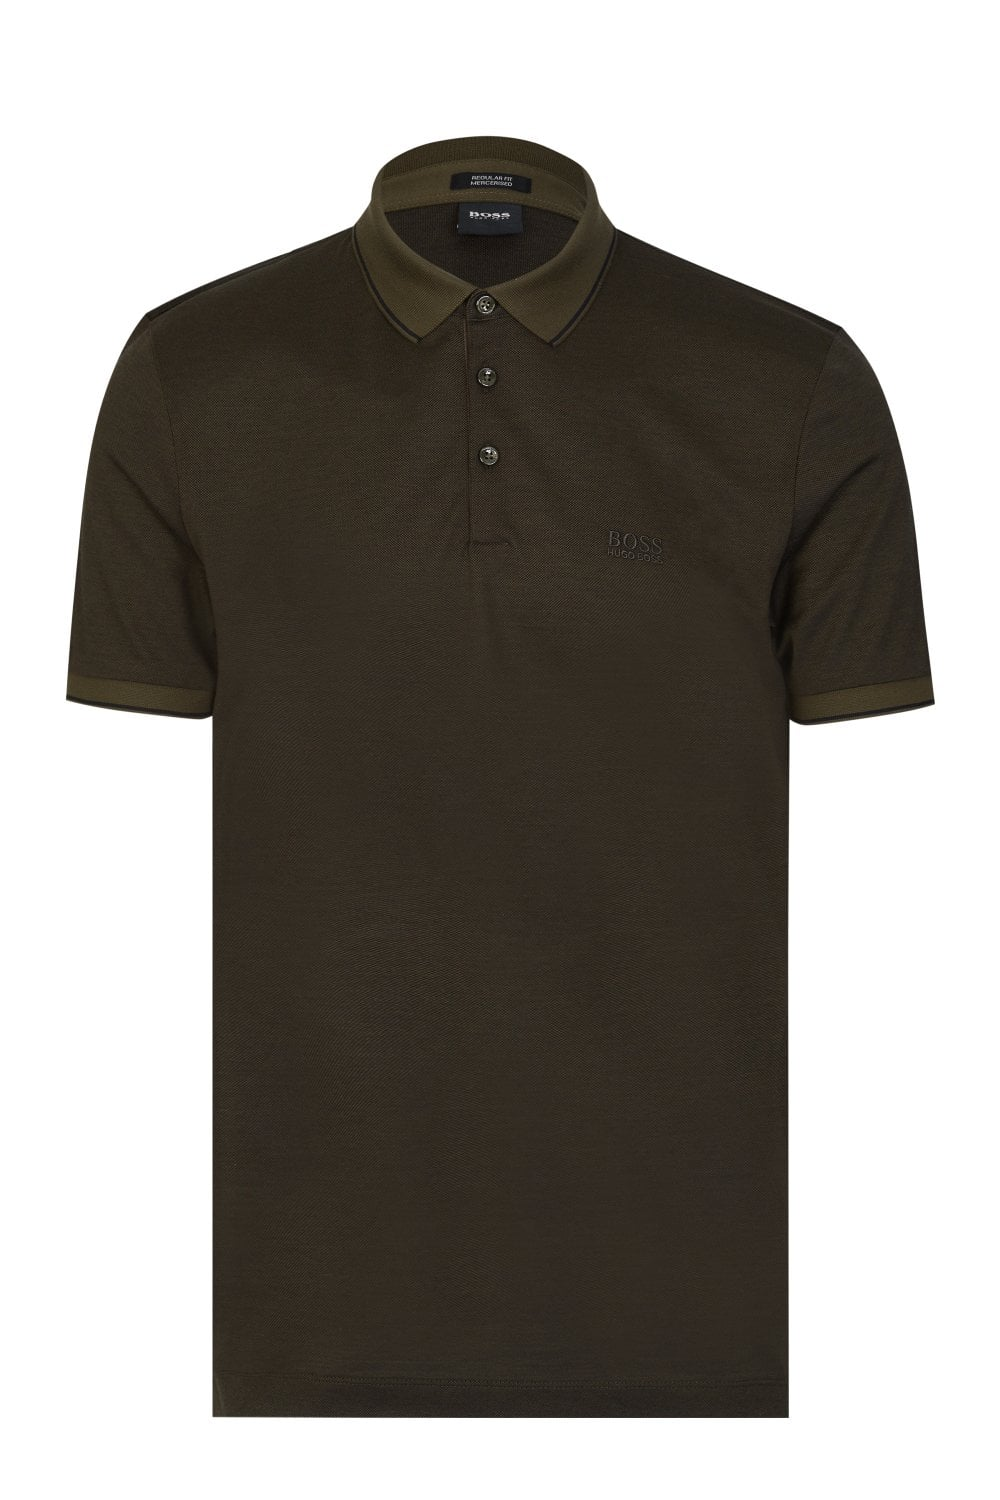 4bad1b33d Hugo Boss Prout 10 Polo Green